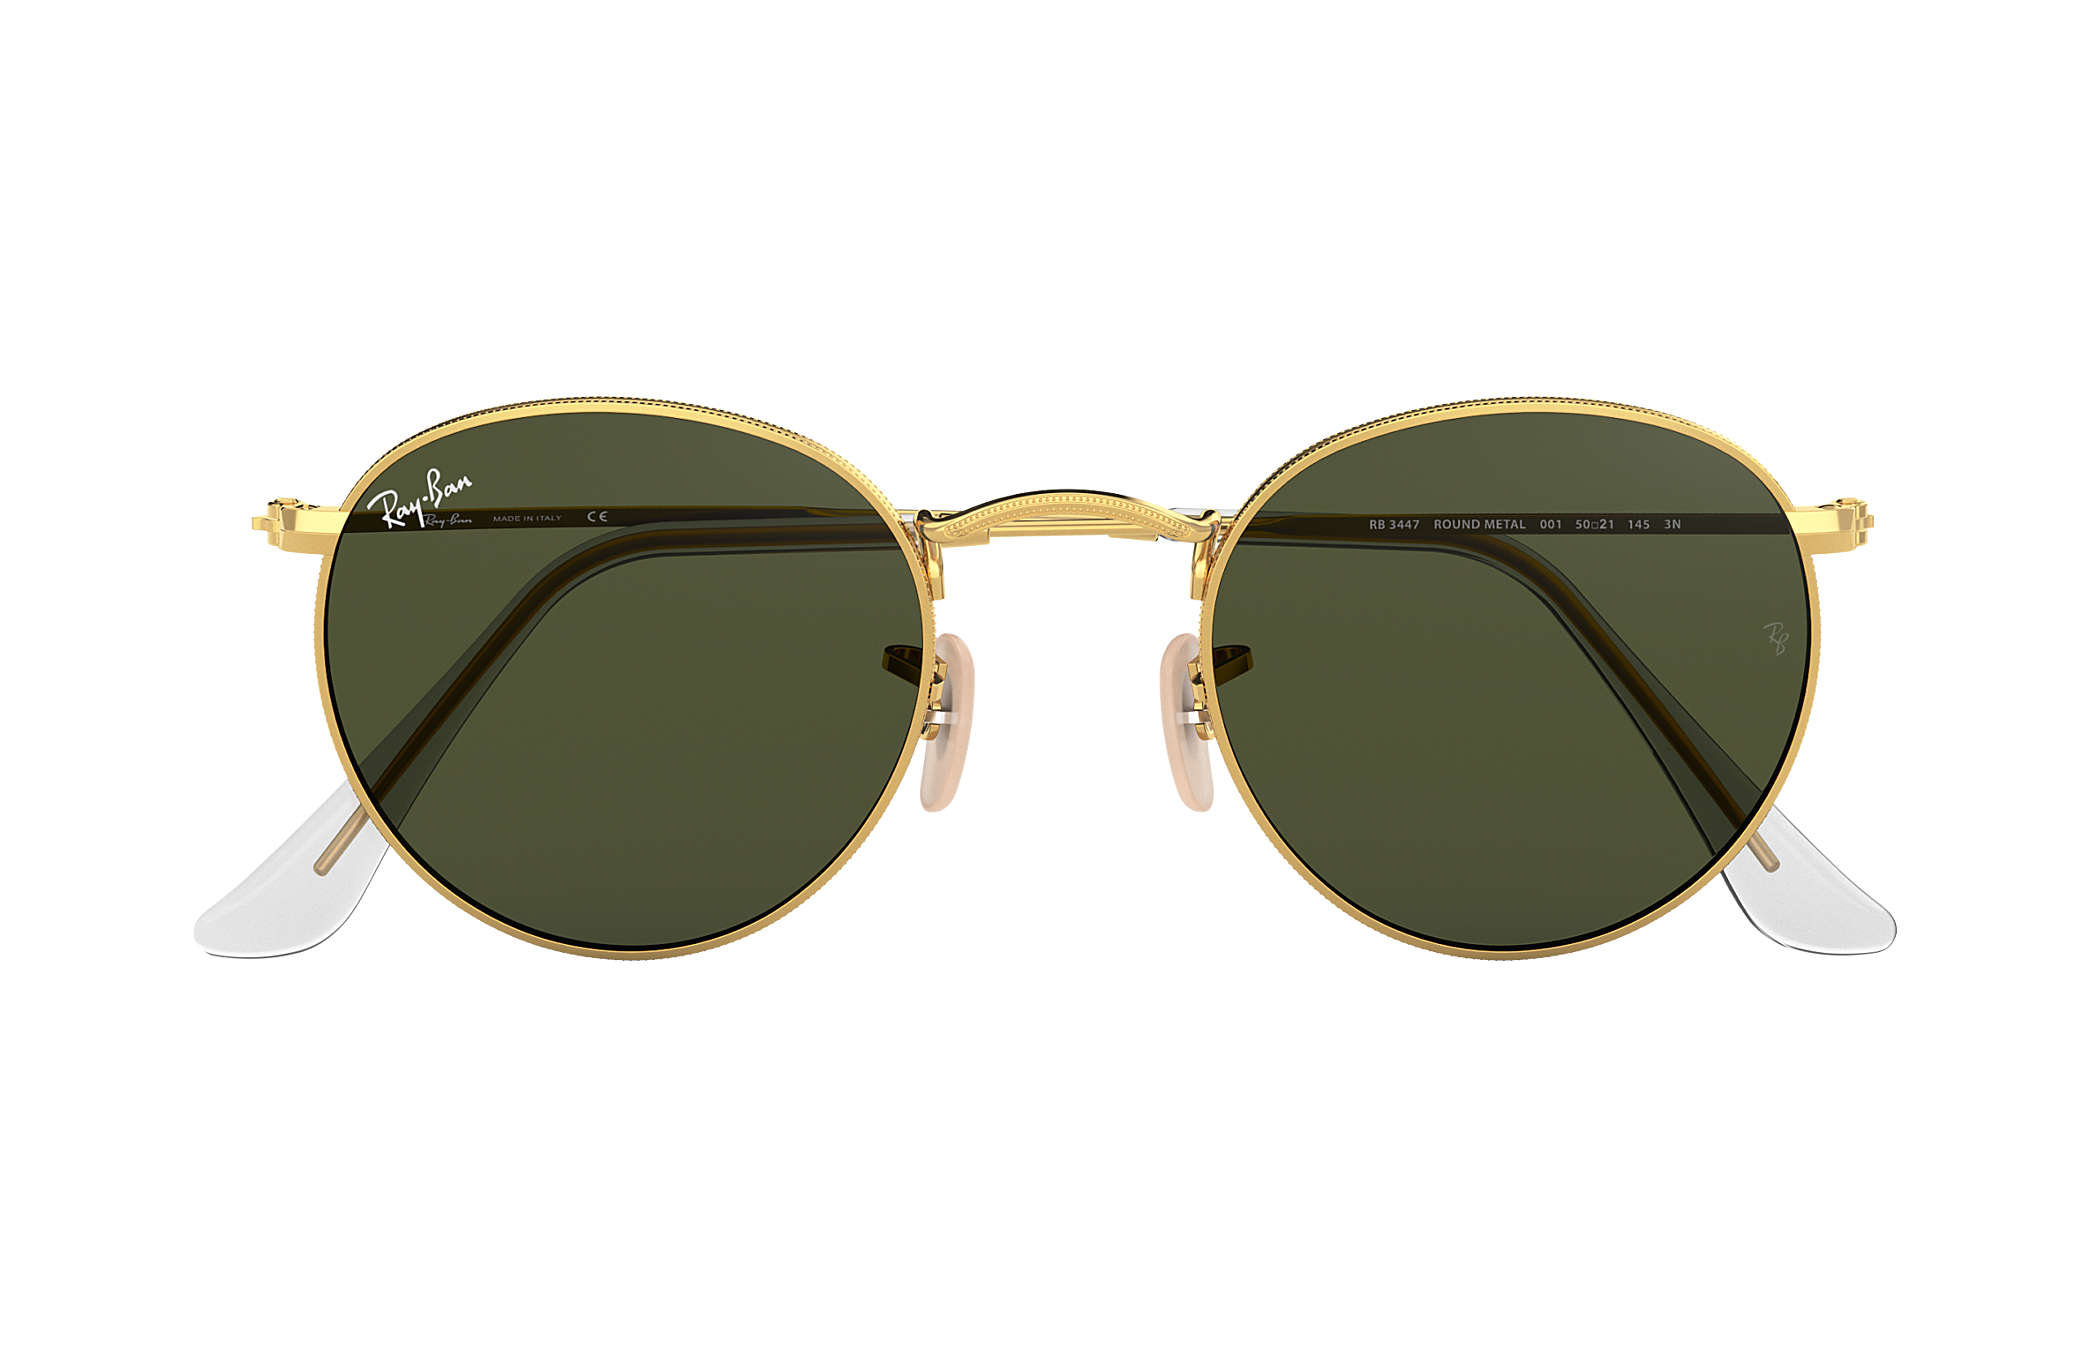 692780f1ec1 Ray-Ban Round Metal RB3447 Gold - Metal - Green Lenses ...